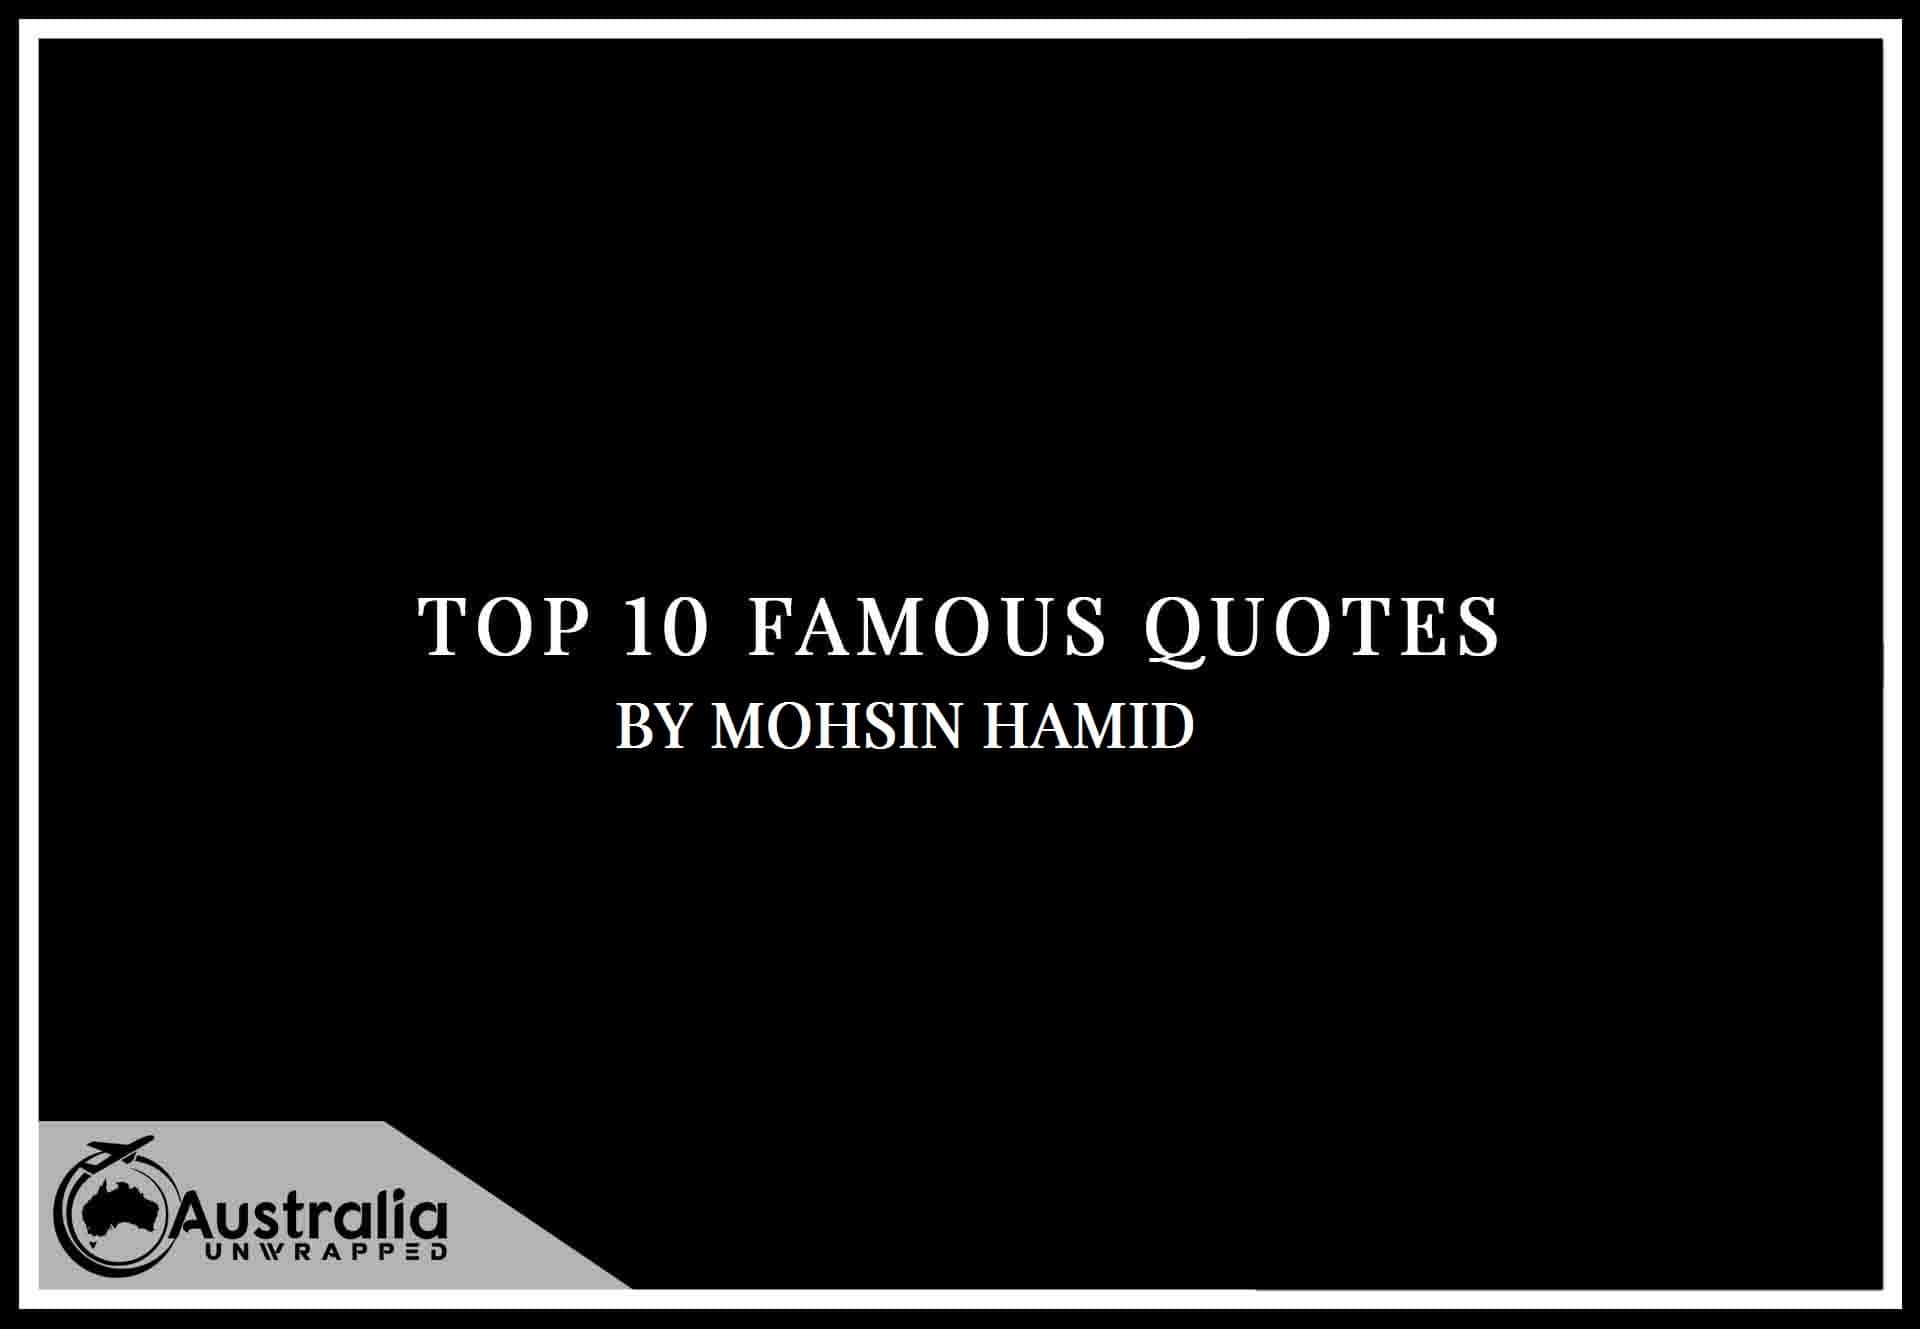 Mohsin Hamid's Top 10 Popular and Famous Quotes